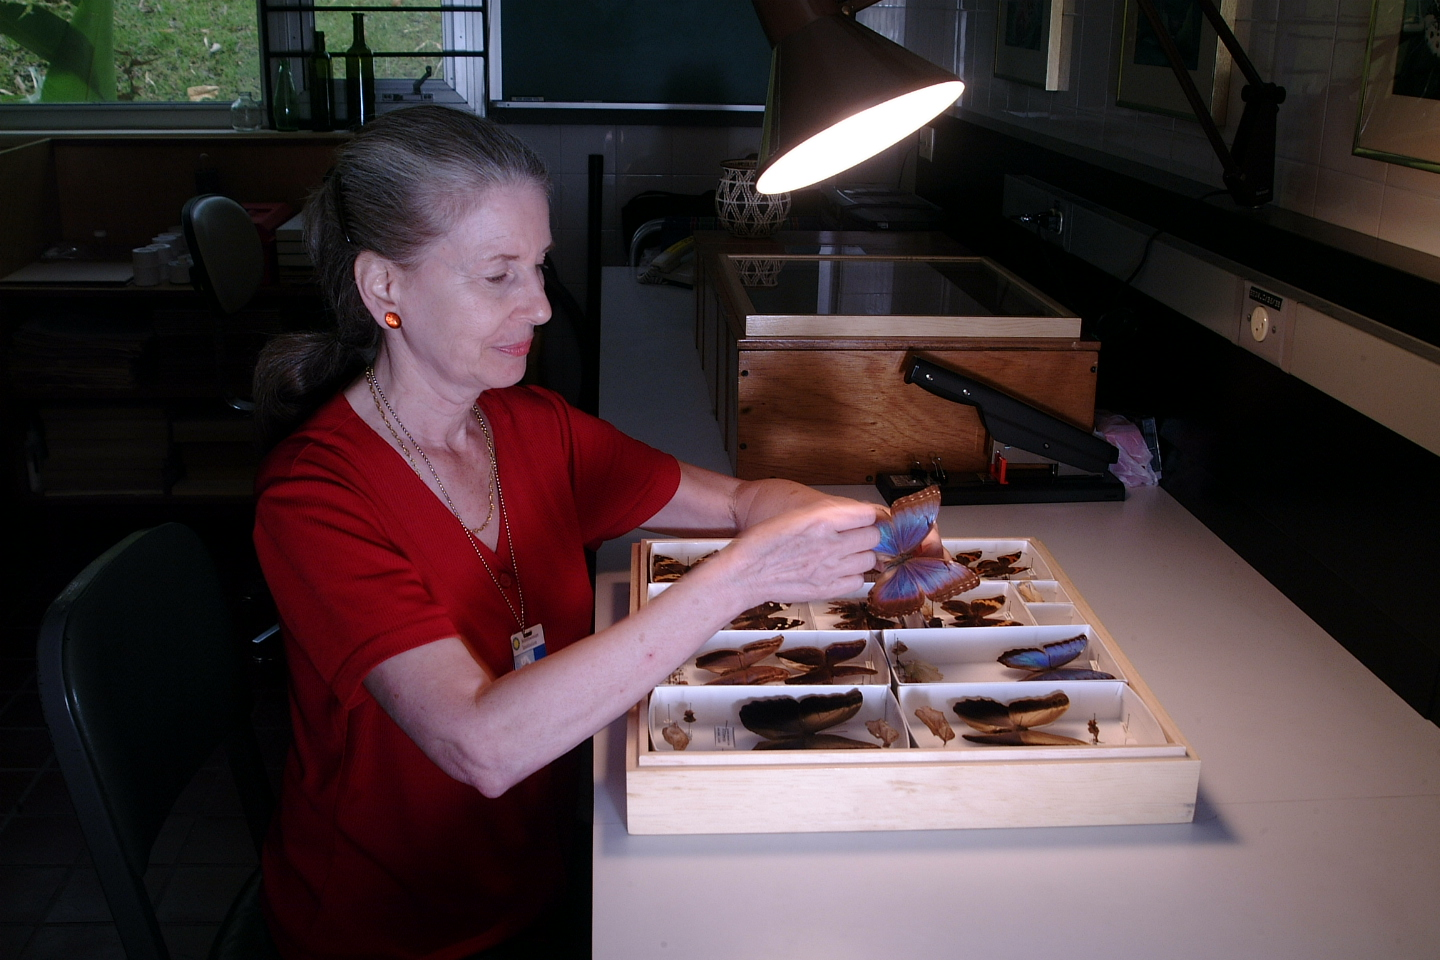 A more recent photograph of Aiello handling butterfly specimens at a desk.